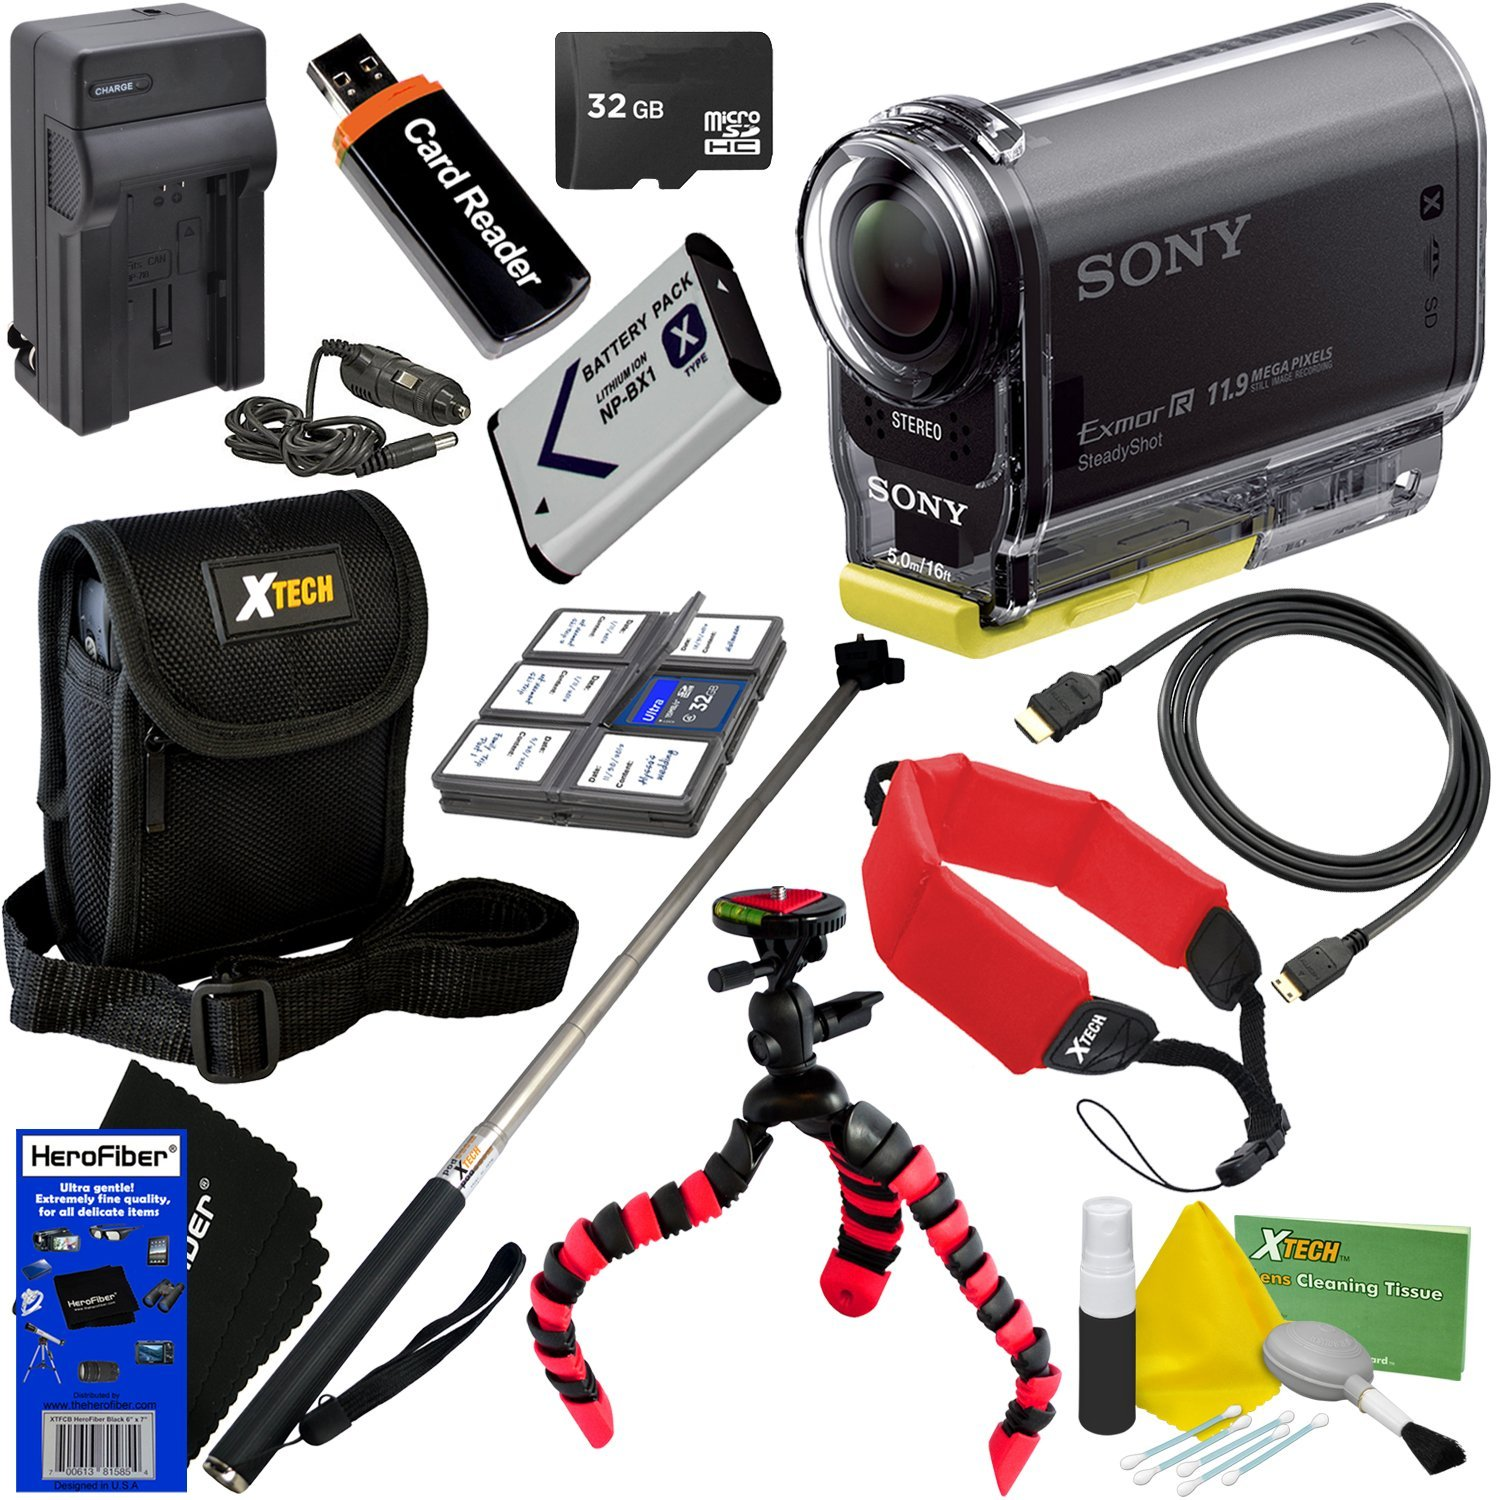 Sony HDR-AS20 Action Video Camera with Wi-Fi, NFC & Full HD 1080p Video International Version + NP-BX1 Battery & AC/DC Charger + 10pc 32GB Deluxe Accessory Kit w/HeroFiber Cleaning Cloth